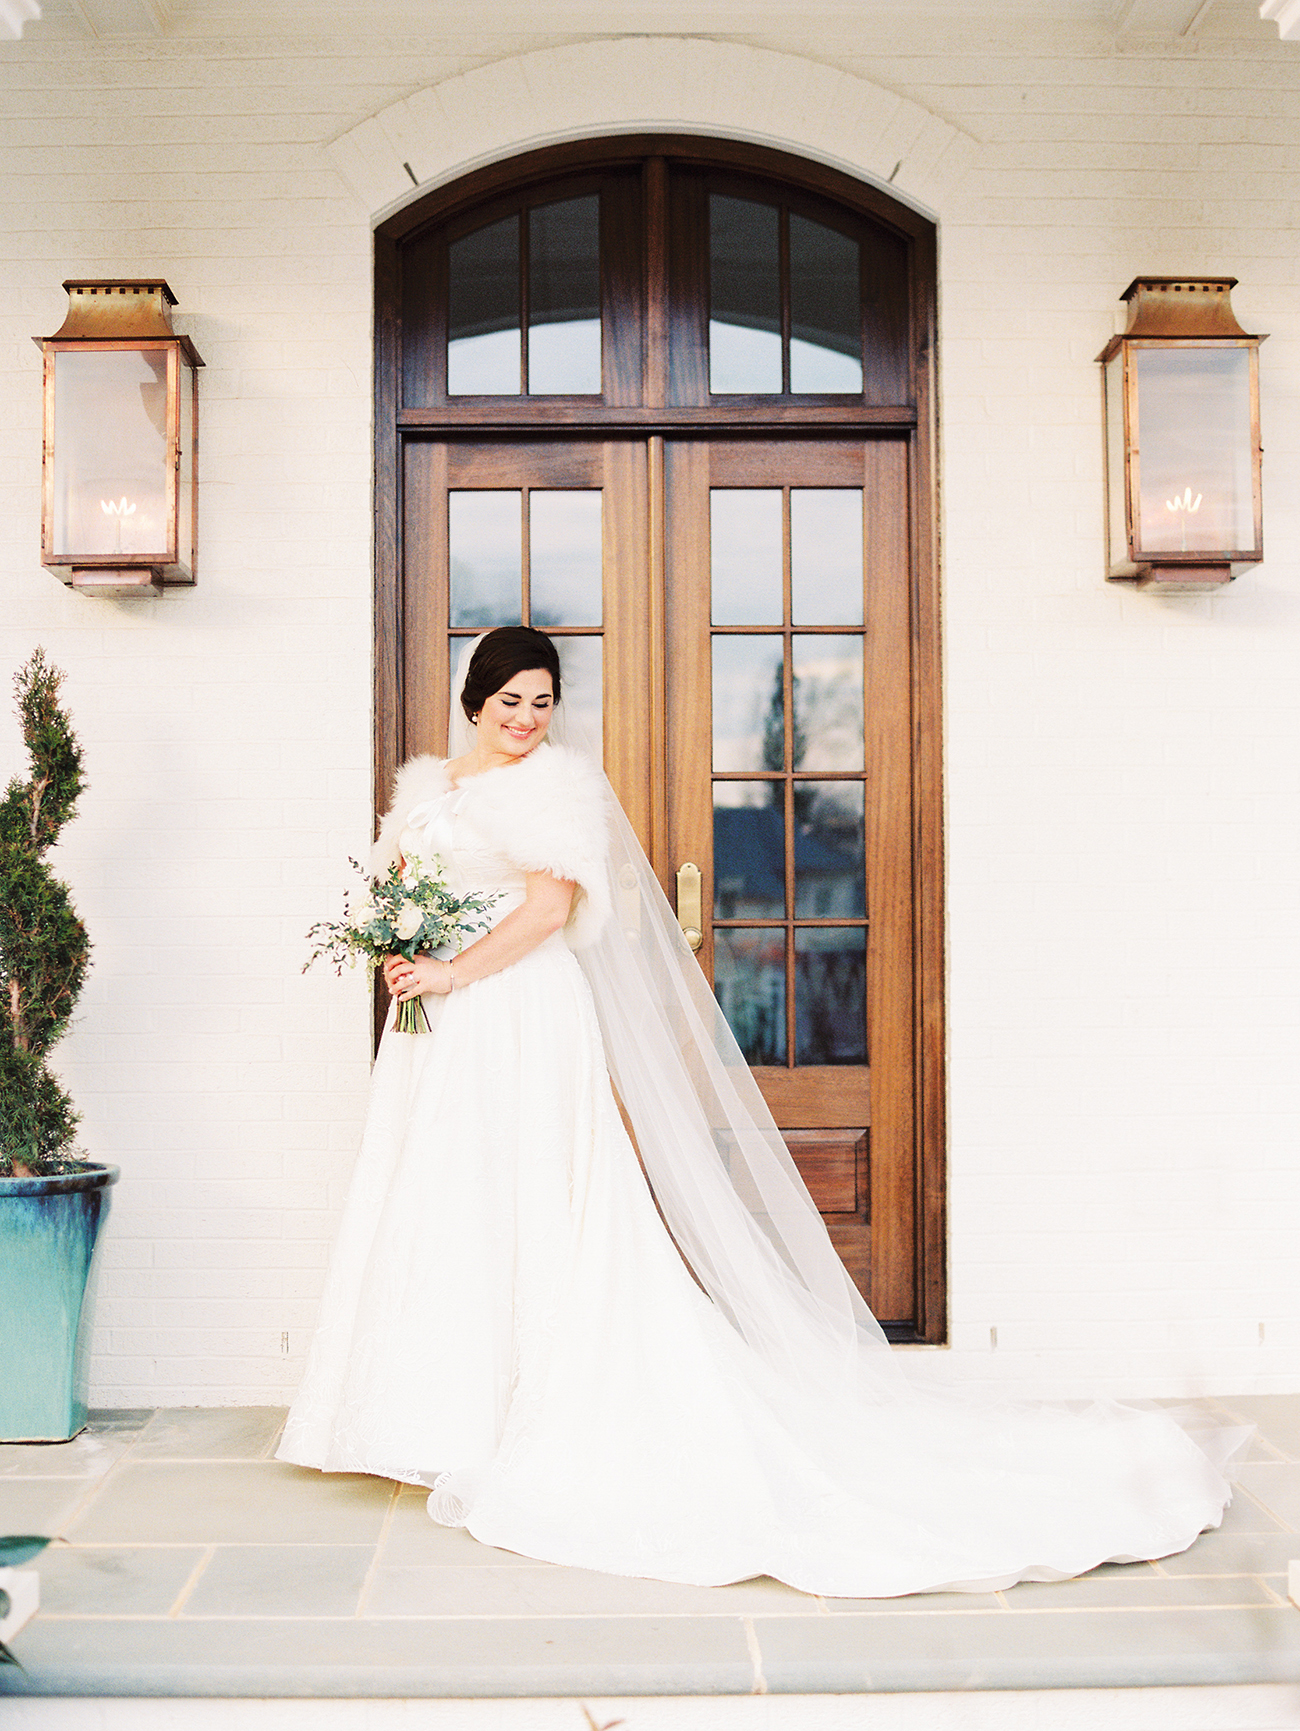 nrp-nancy-ashleydavisbridals-2008